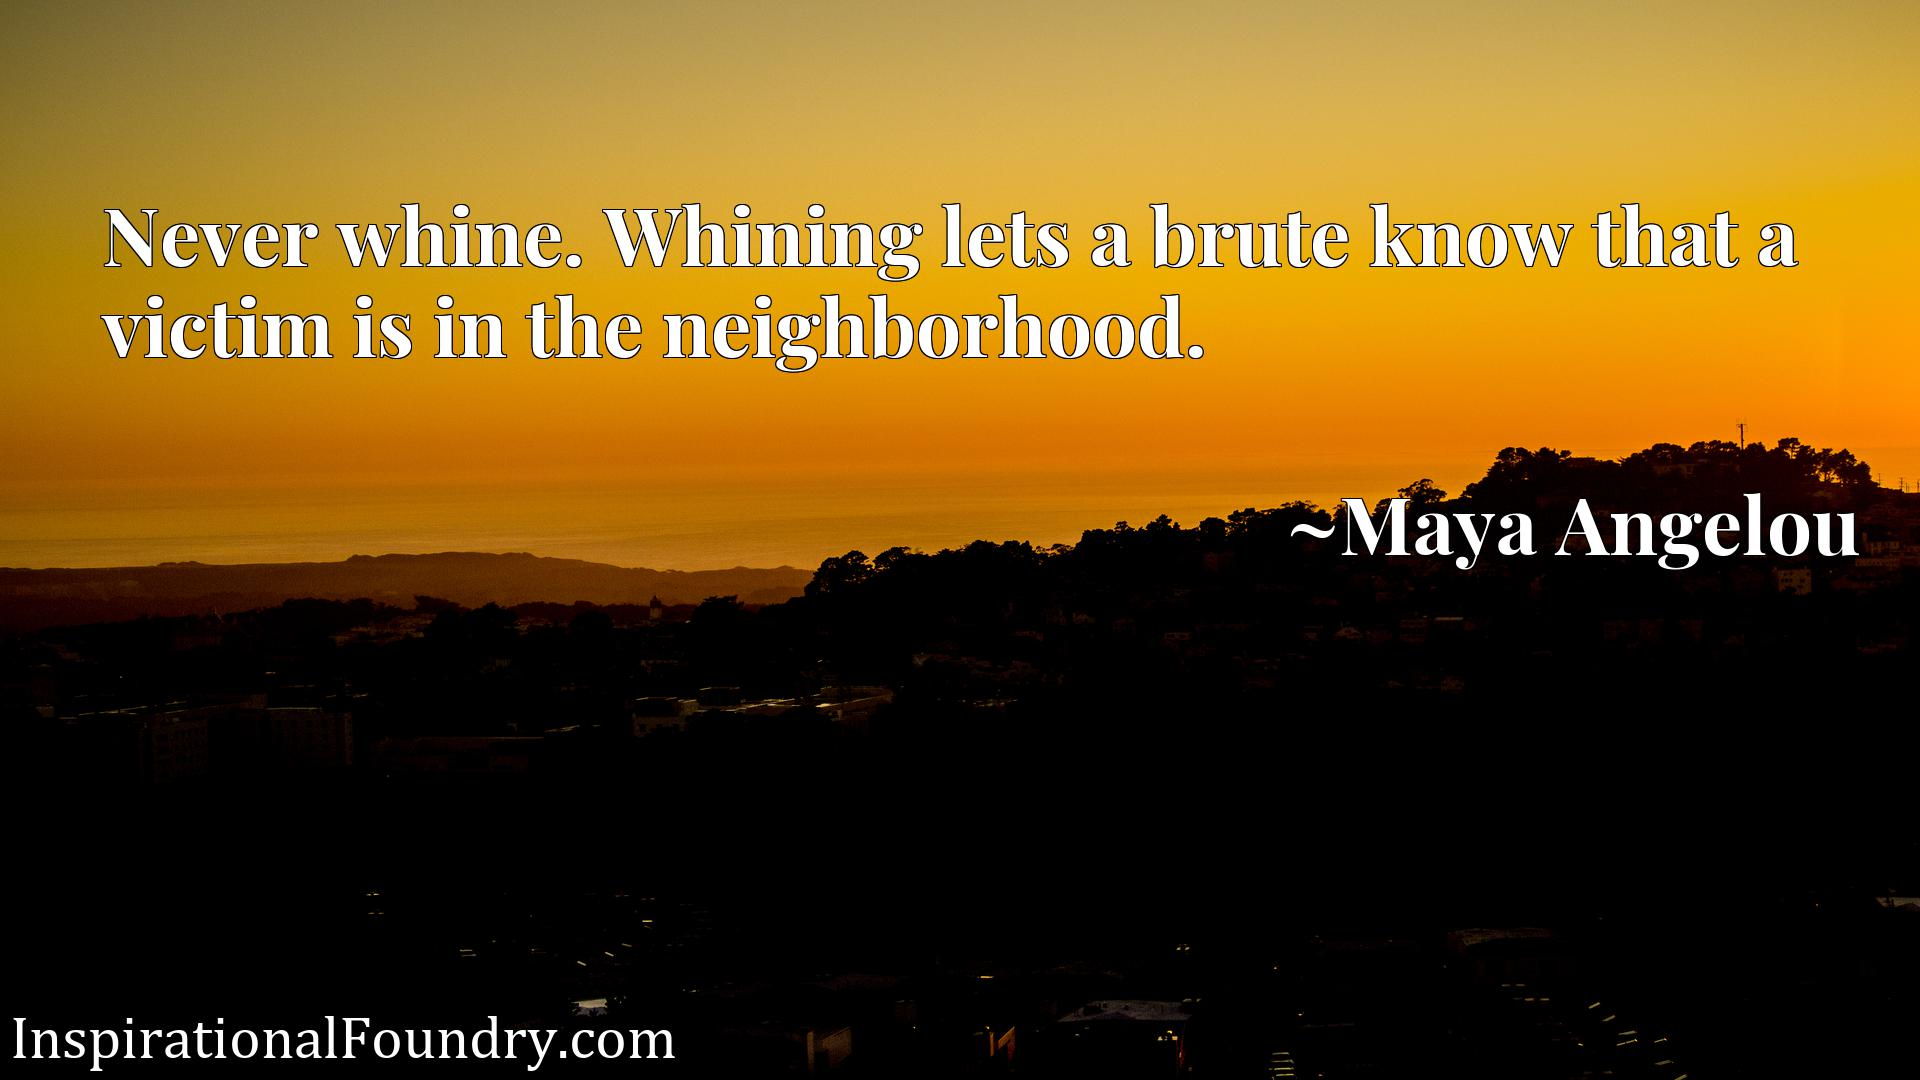 Never whine. Whining lets a brute know that a victim is in the neighborhood.